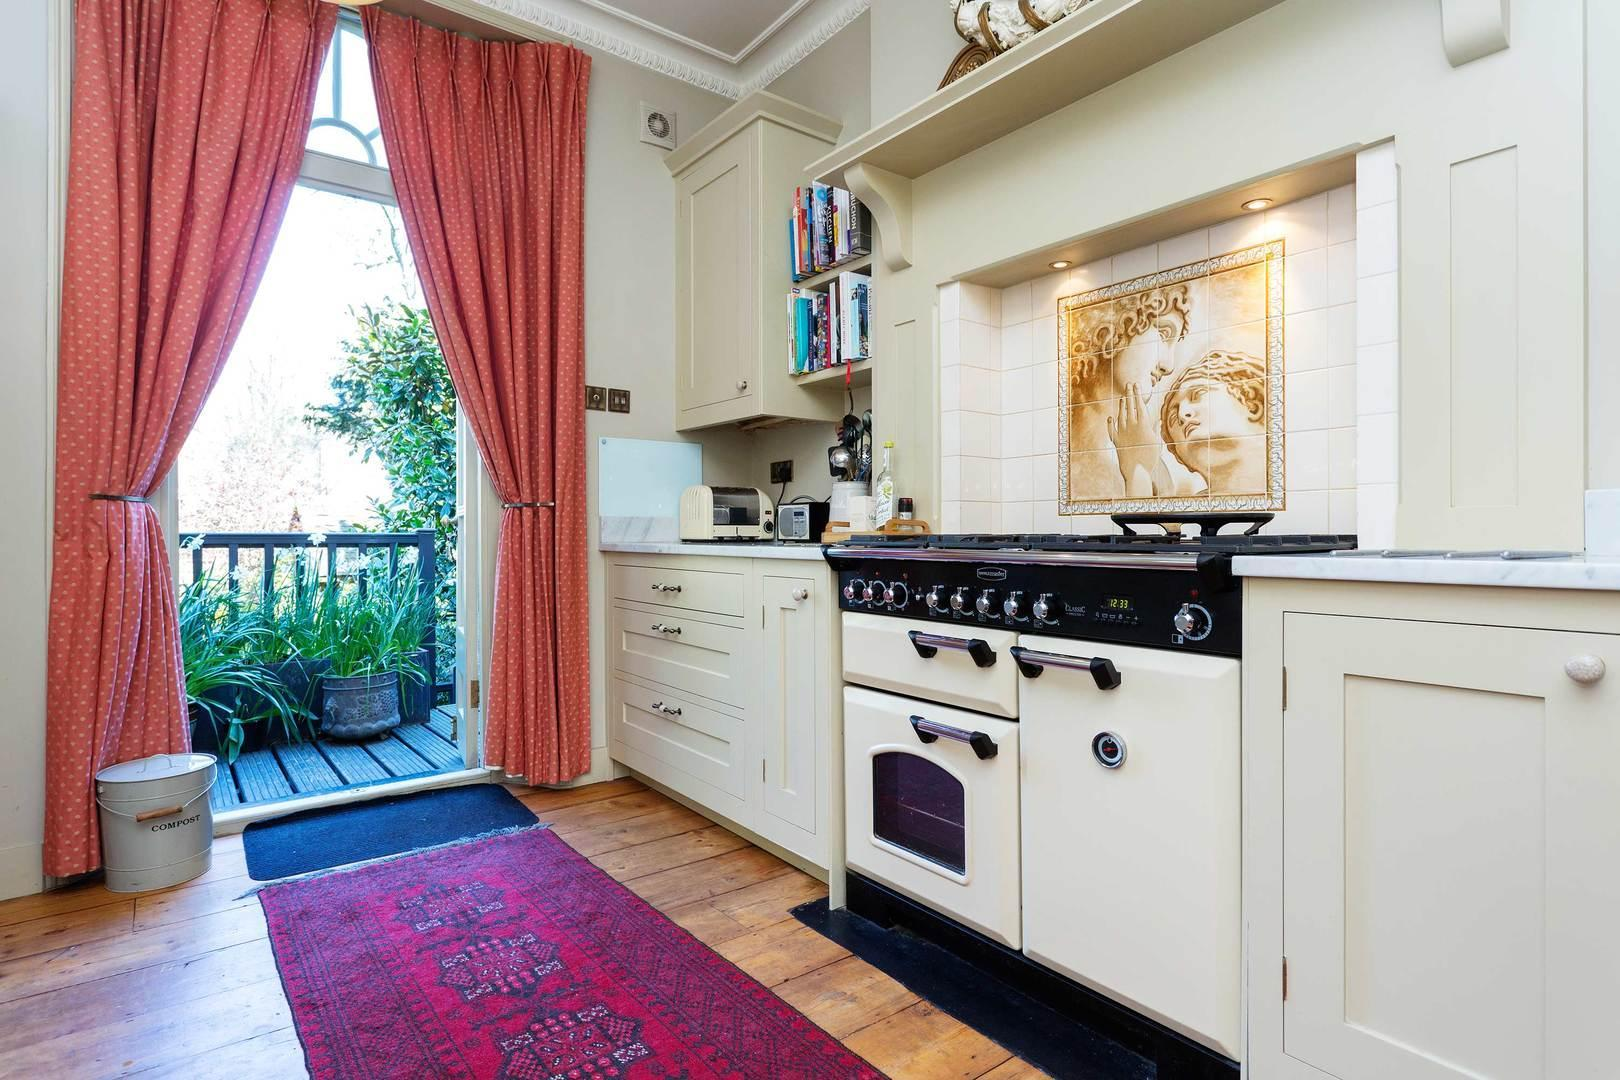 Hotels Review: Grand Canonbury Townhouse – Room Rates, Pictures and Deals